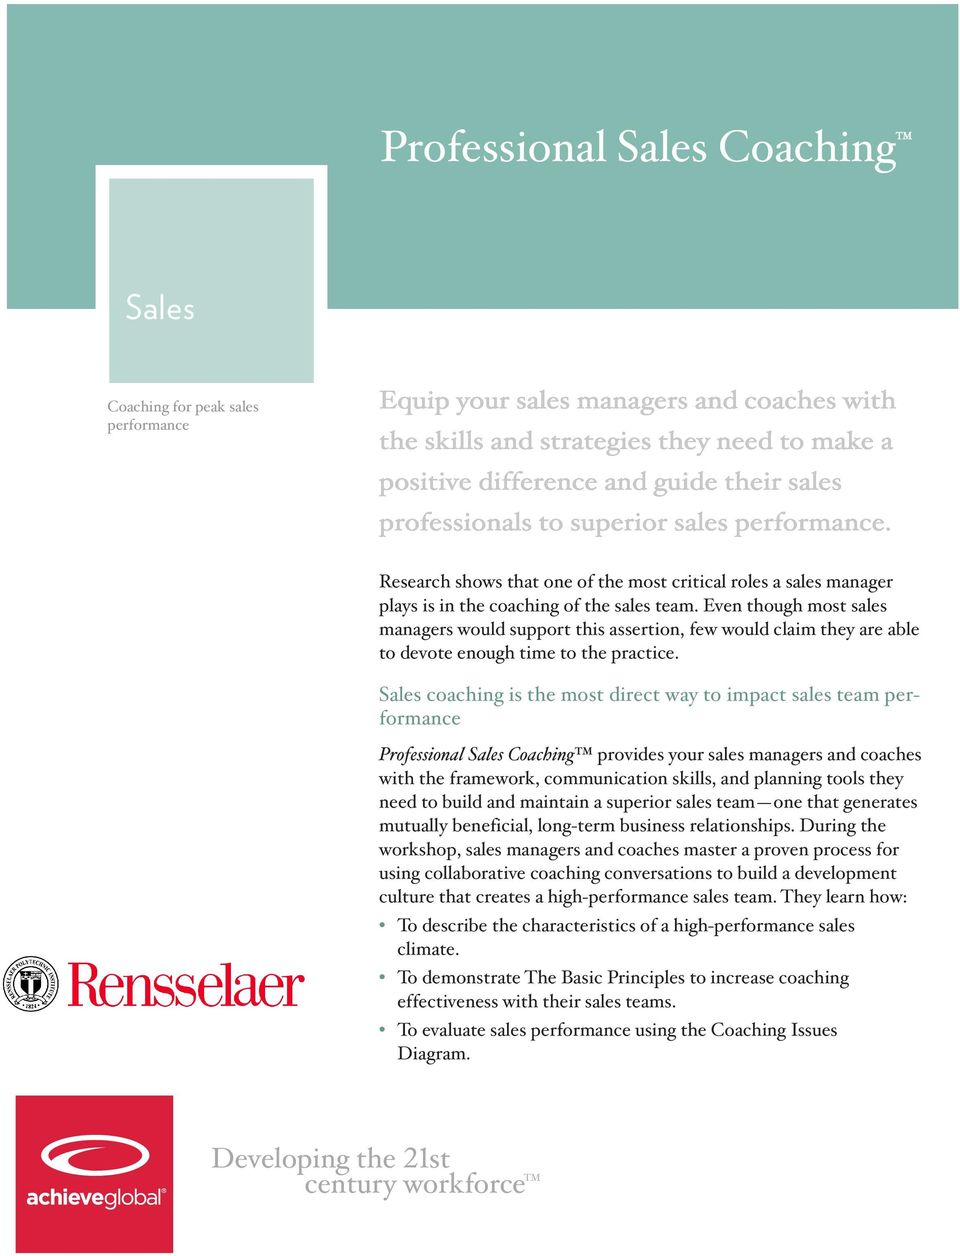 Sales coaching is the most direct way to impact sales team performance Professional Sales Coaching provides your sales managers and coaches with the framework, communication skills, and planning